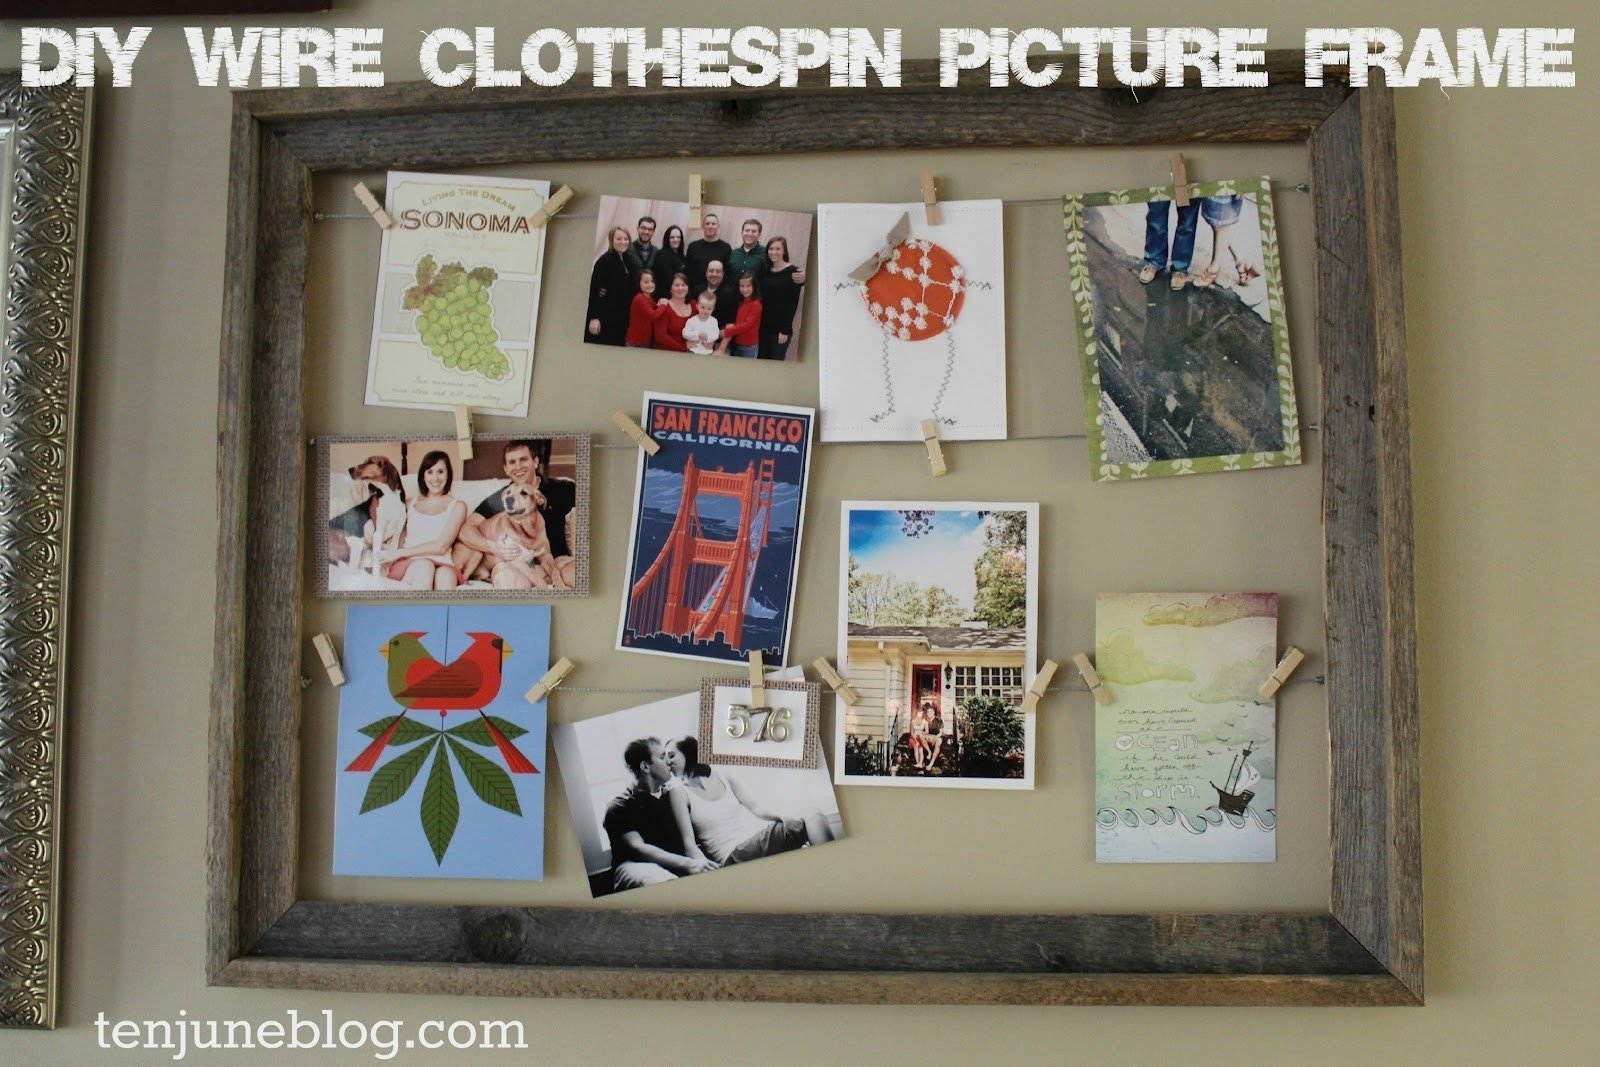 10 Famous Craft Ideas For Picture Frames ten june diy wire clothespin picture frame 2020